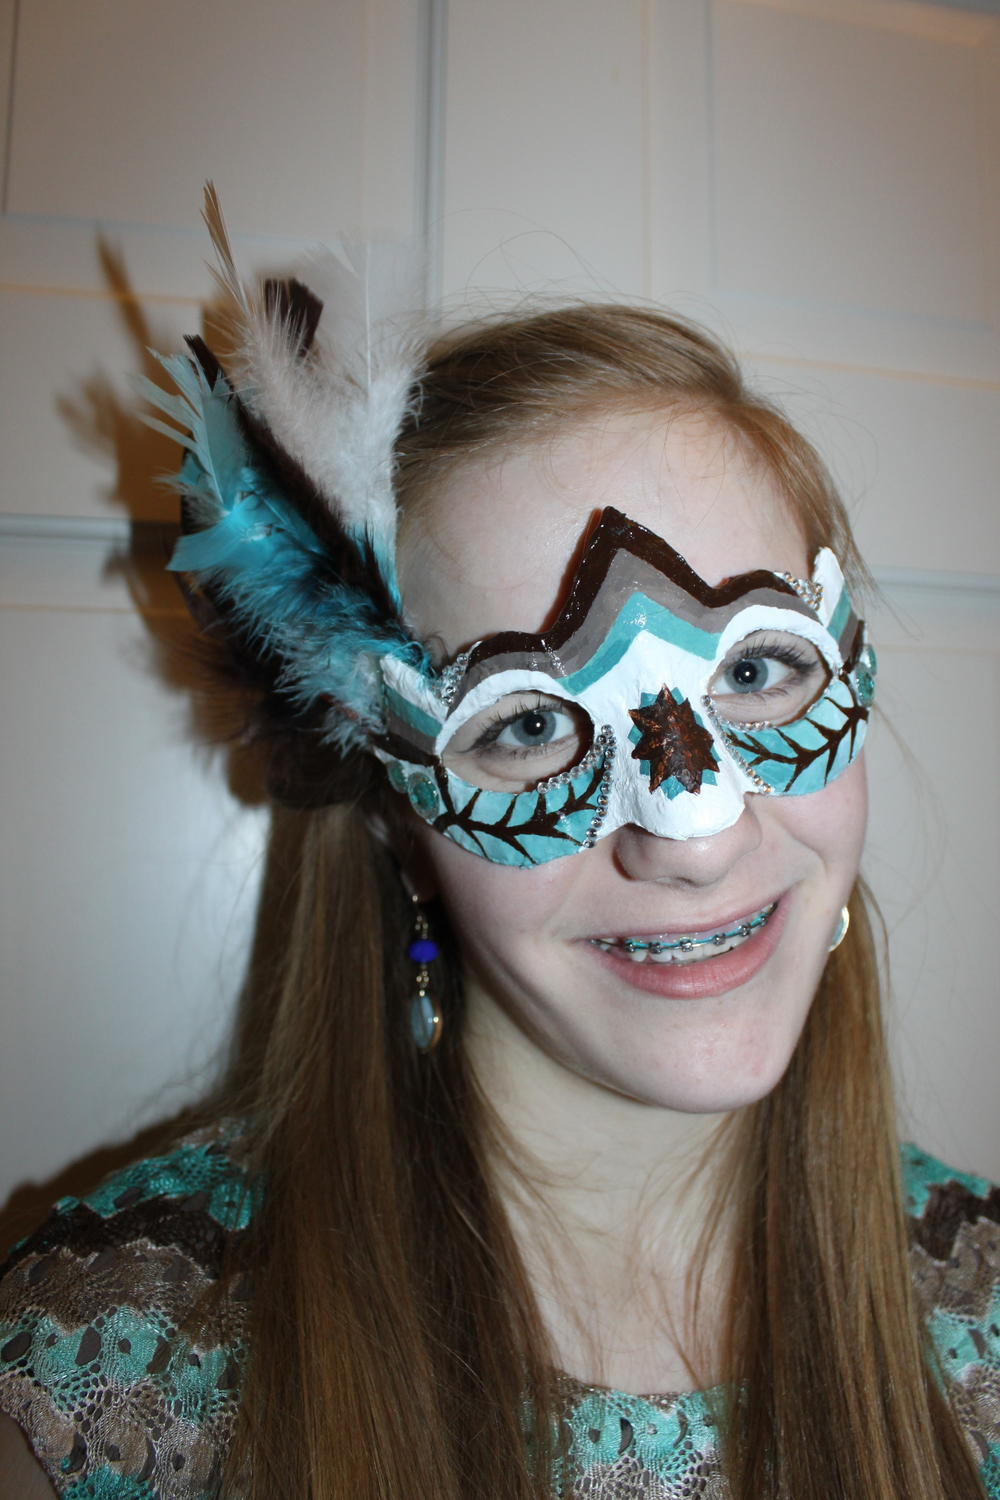 Jessie hand made this mask for a party she went to. She won an prize for it!